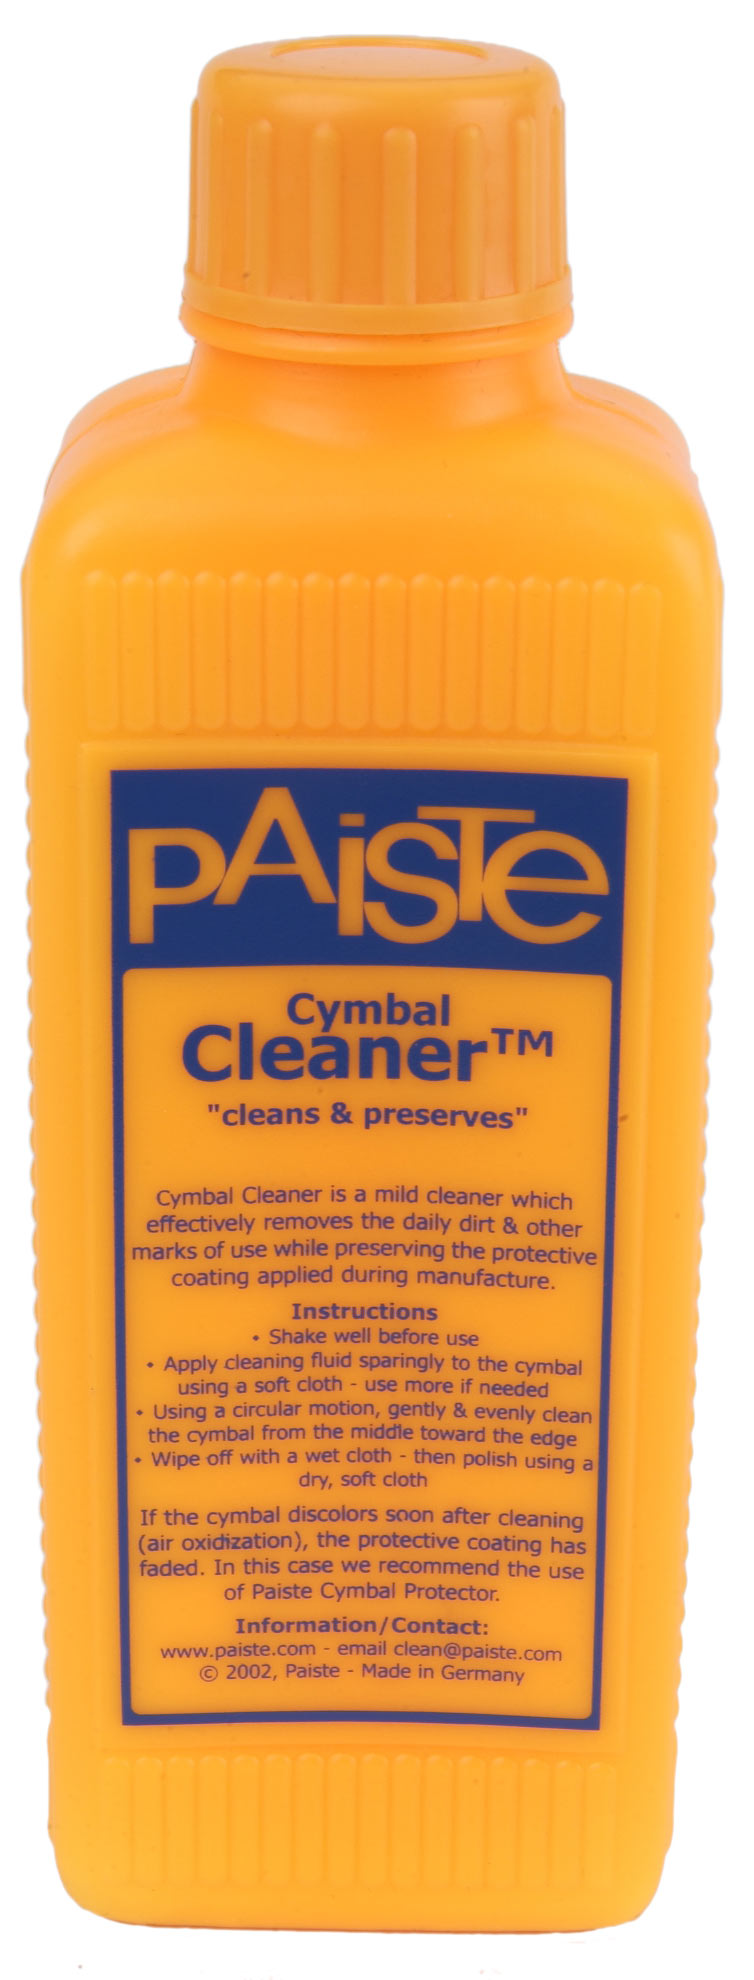 Paiste Cymbal Cleaner - 12 Pack